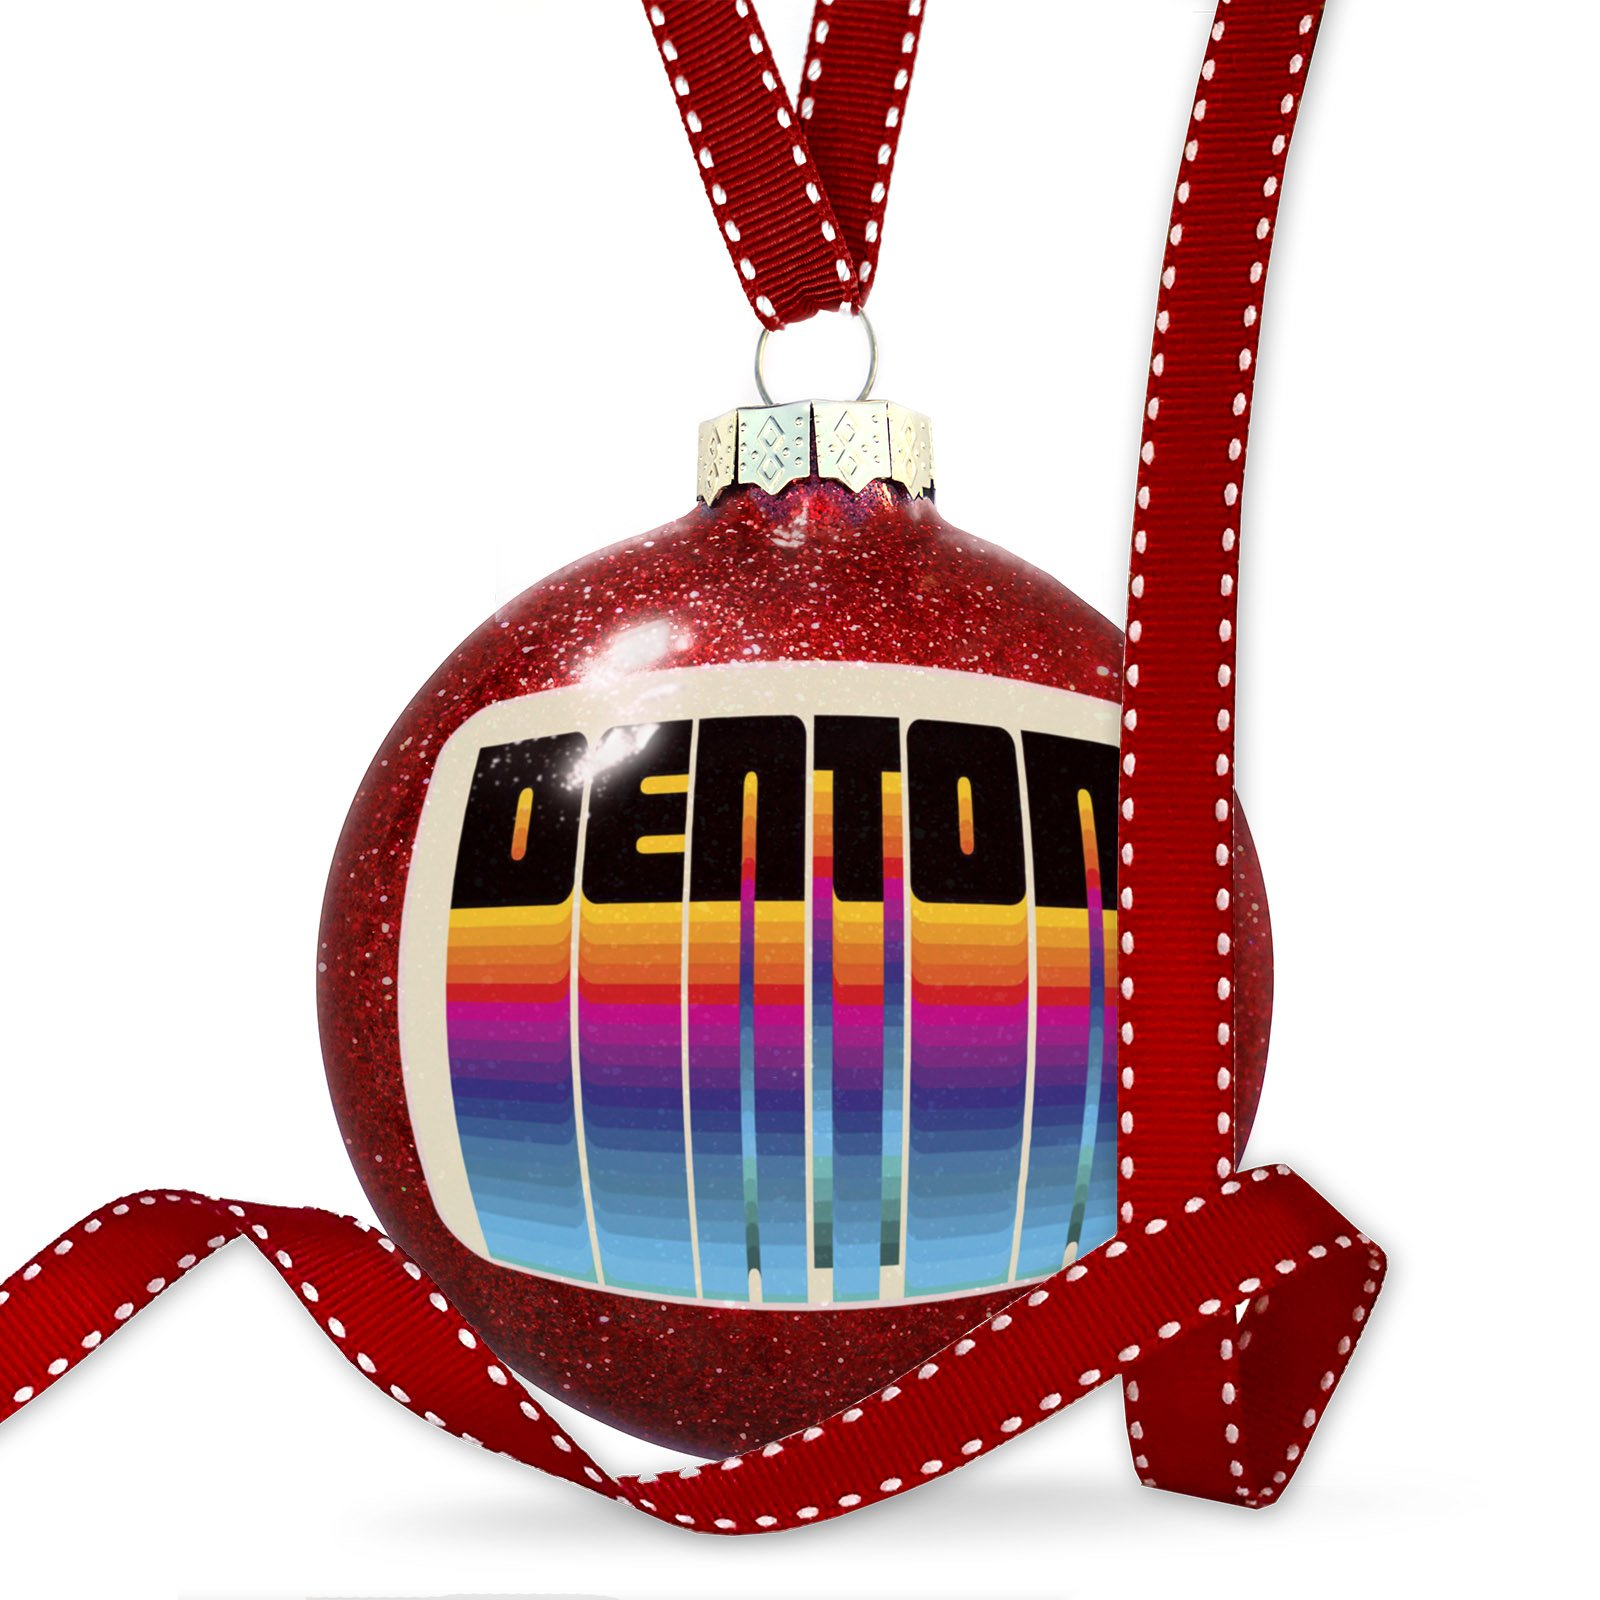 Christmas Decoration Retro Cites States Countries Denton Ornament by NEONBLOND (Image #1)